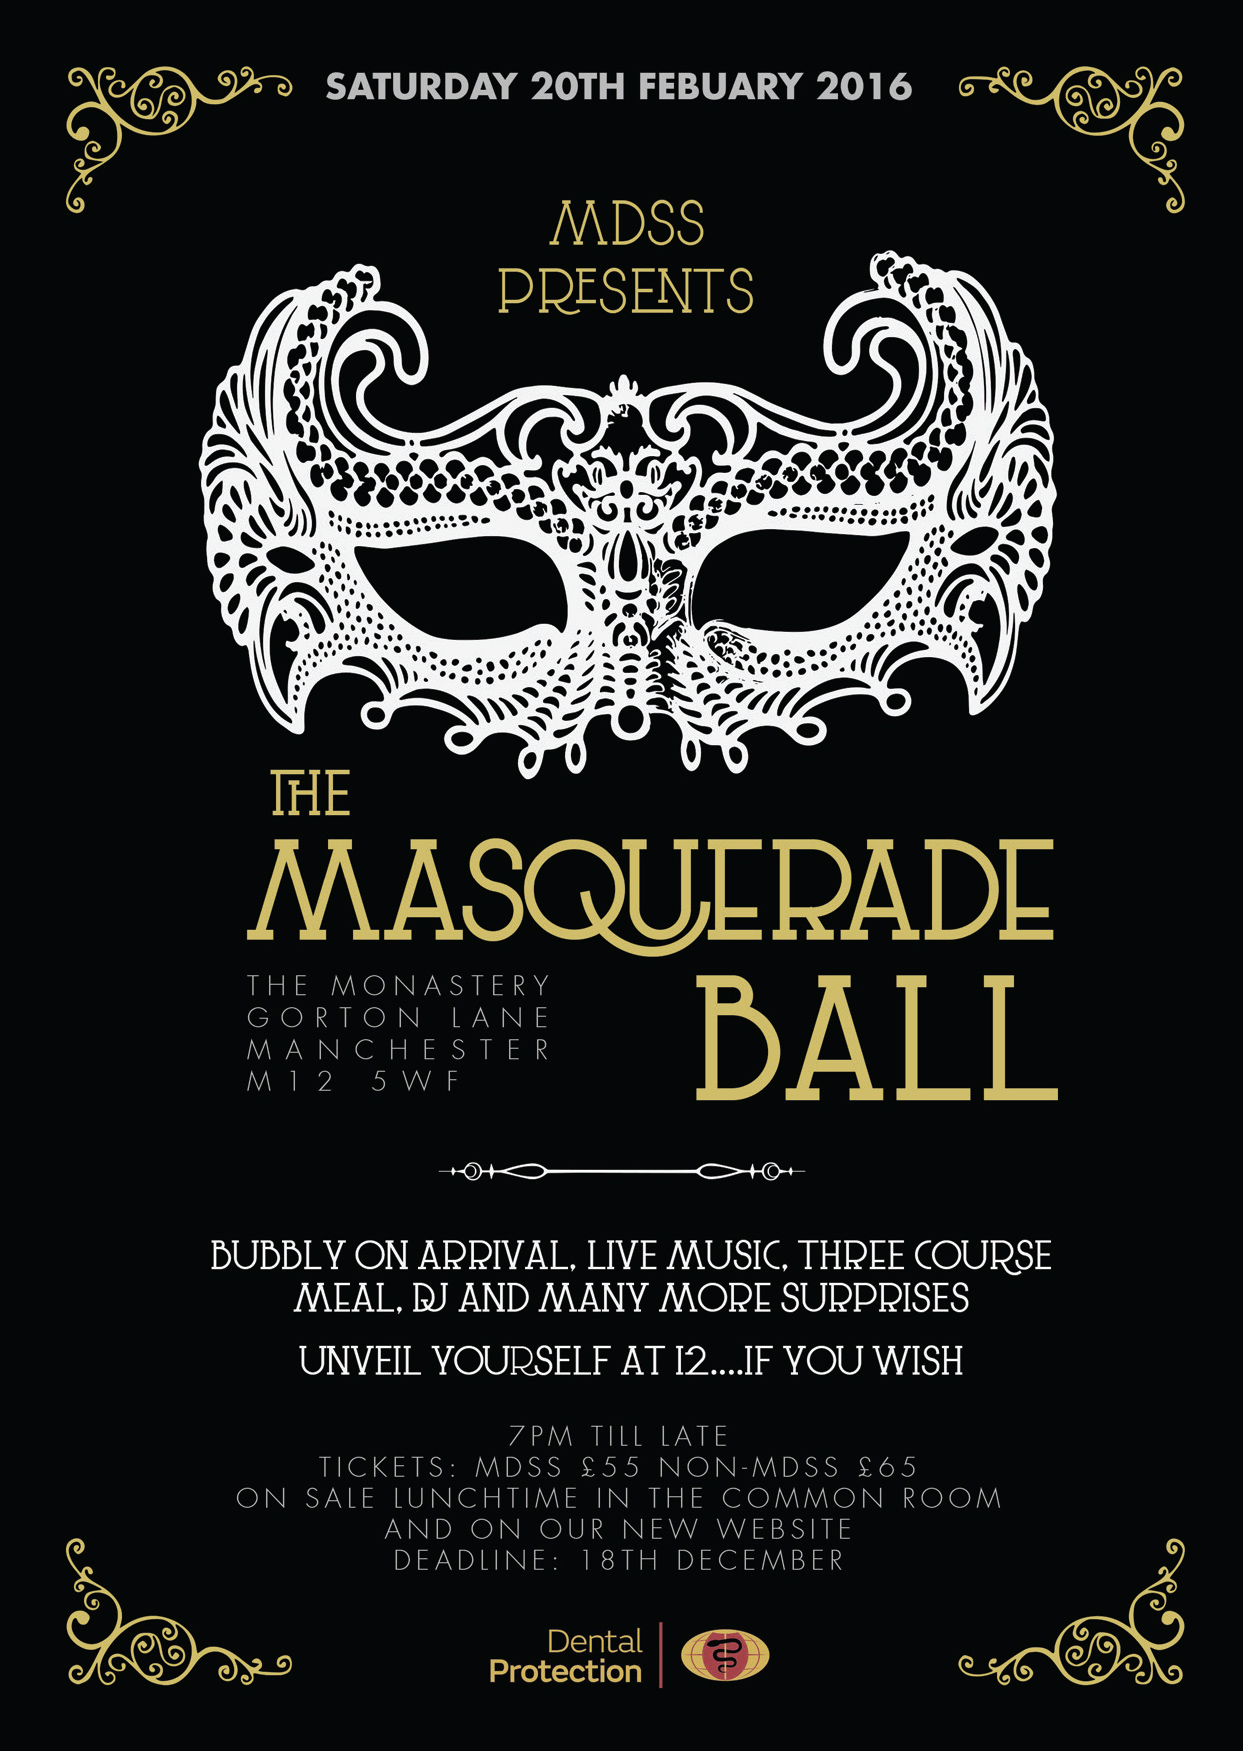 The Masquerade Ball 2016